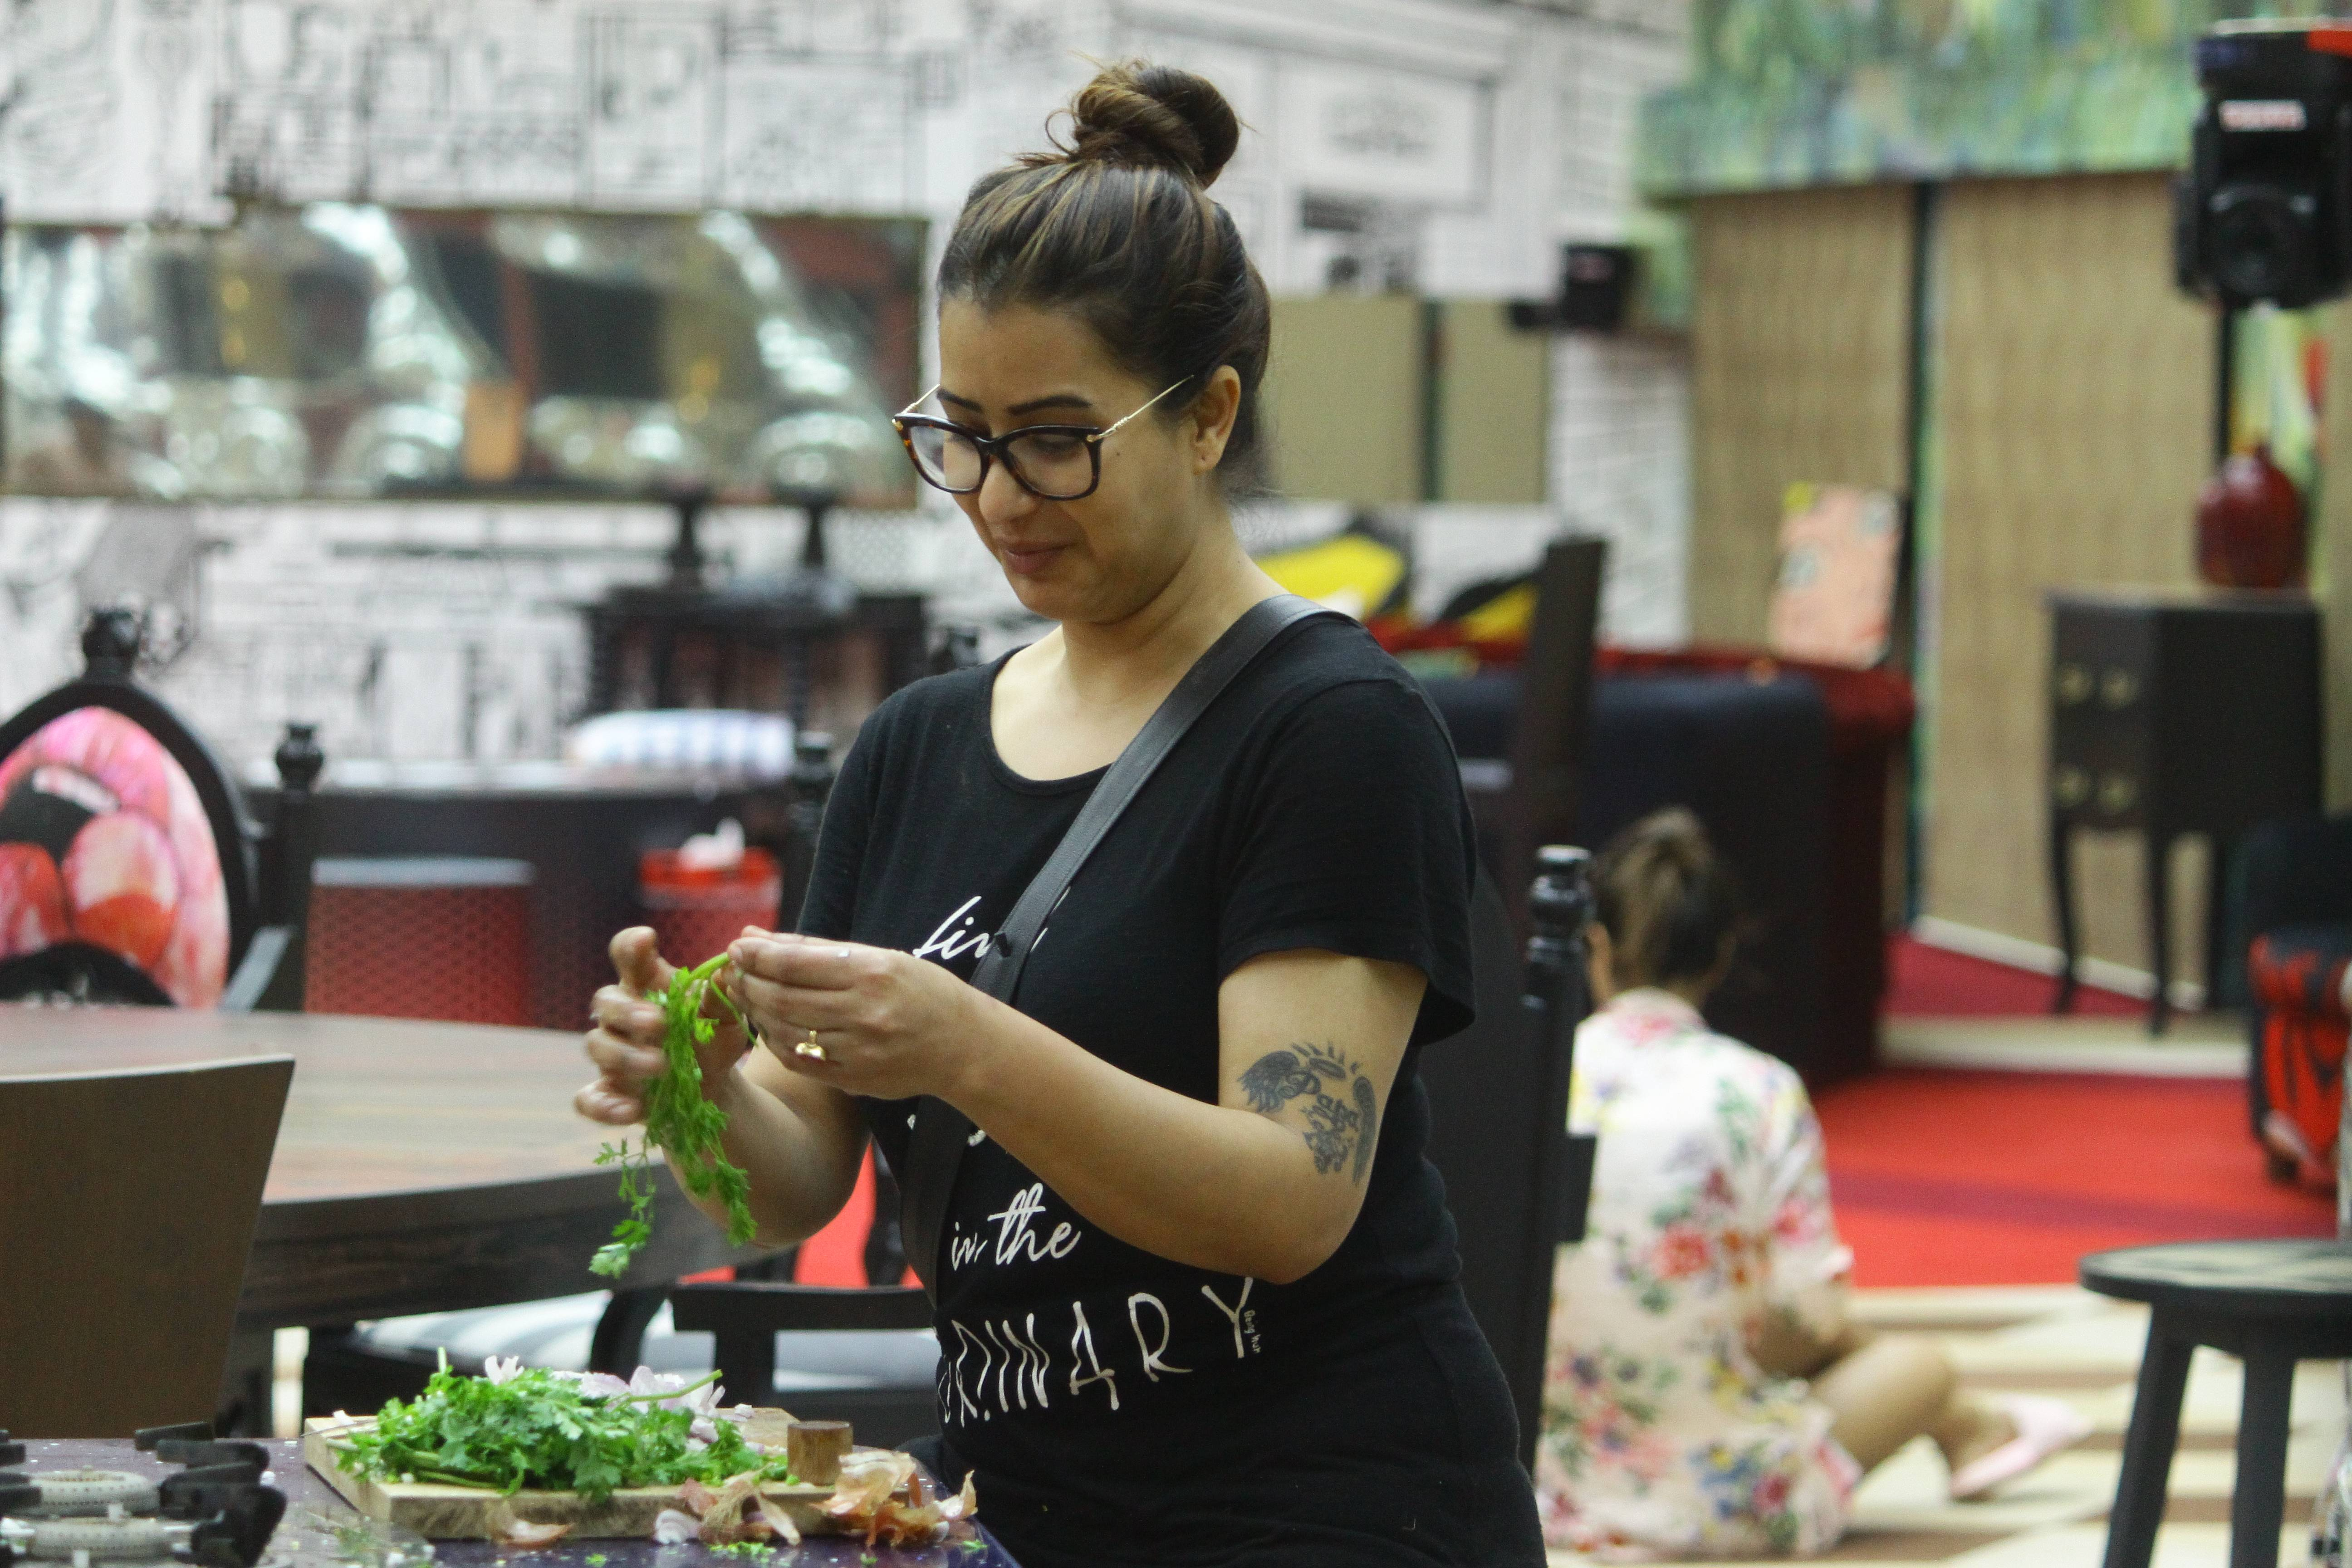 Bigg Boss 11: Shilpa Shinde is undoubtedly the 'Kitchen Queen' this season!